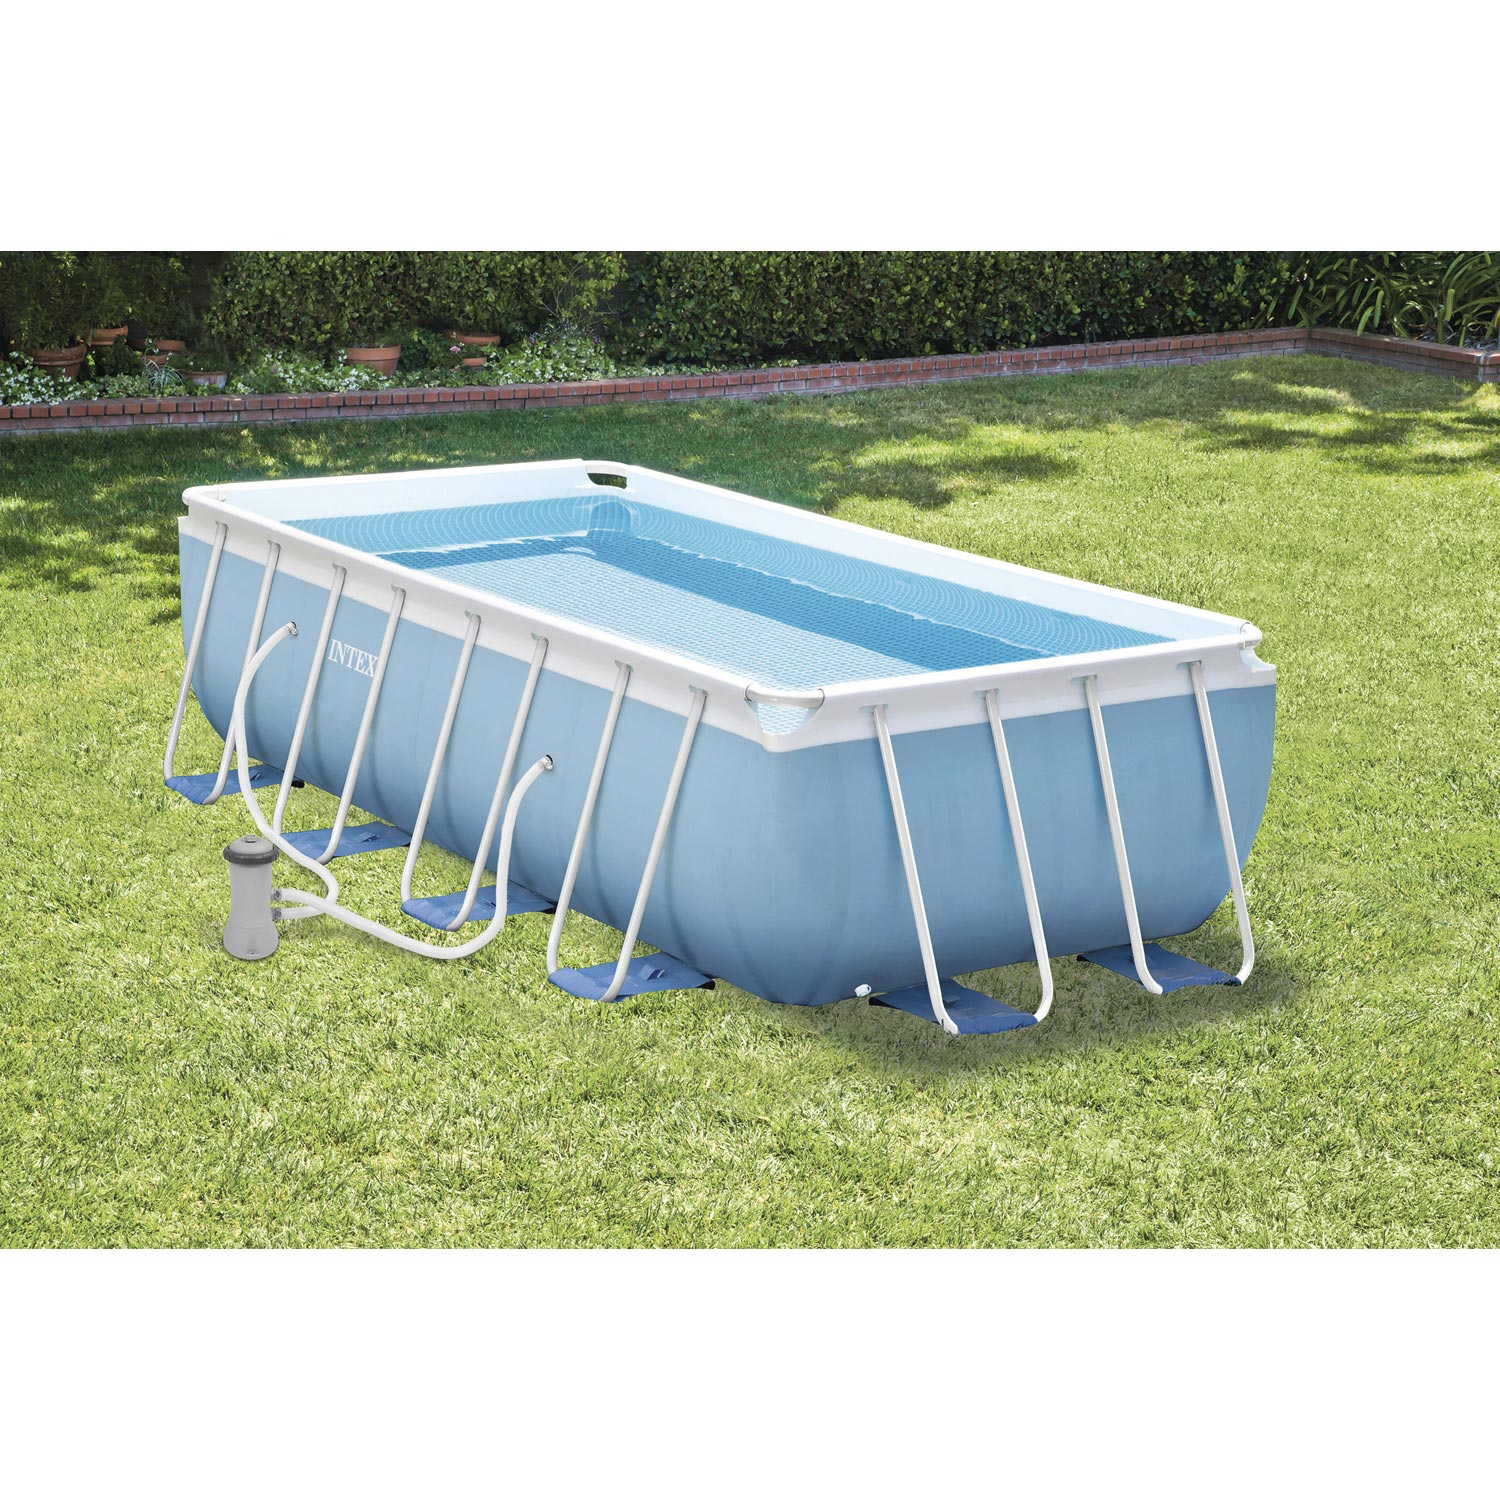 Piscine hors sol autoportante tubulaire prism frame intex for Piscine intex 5 m